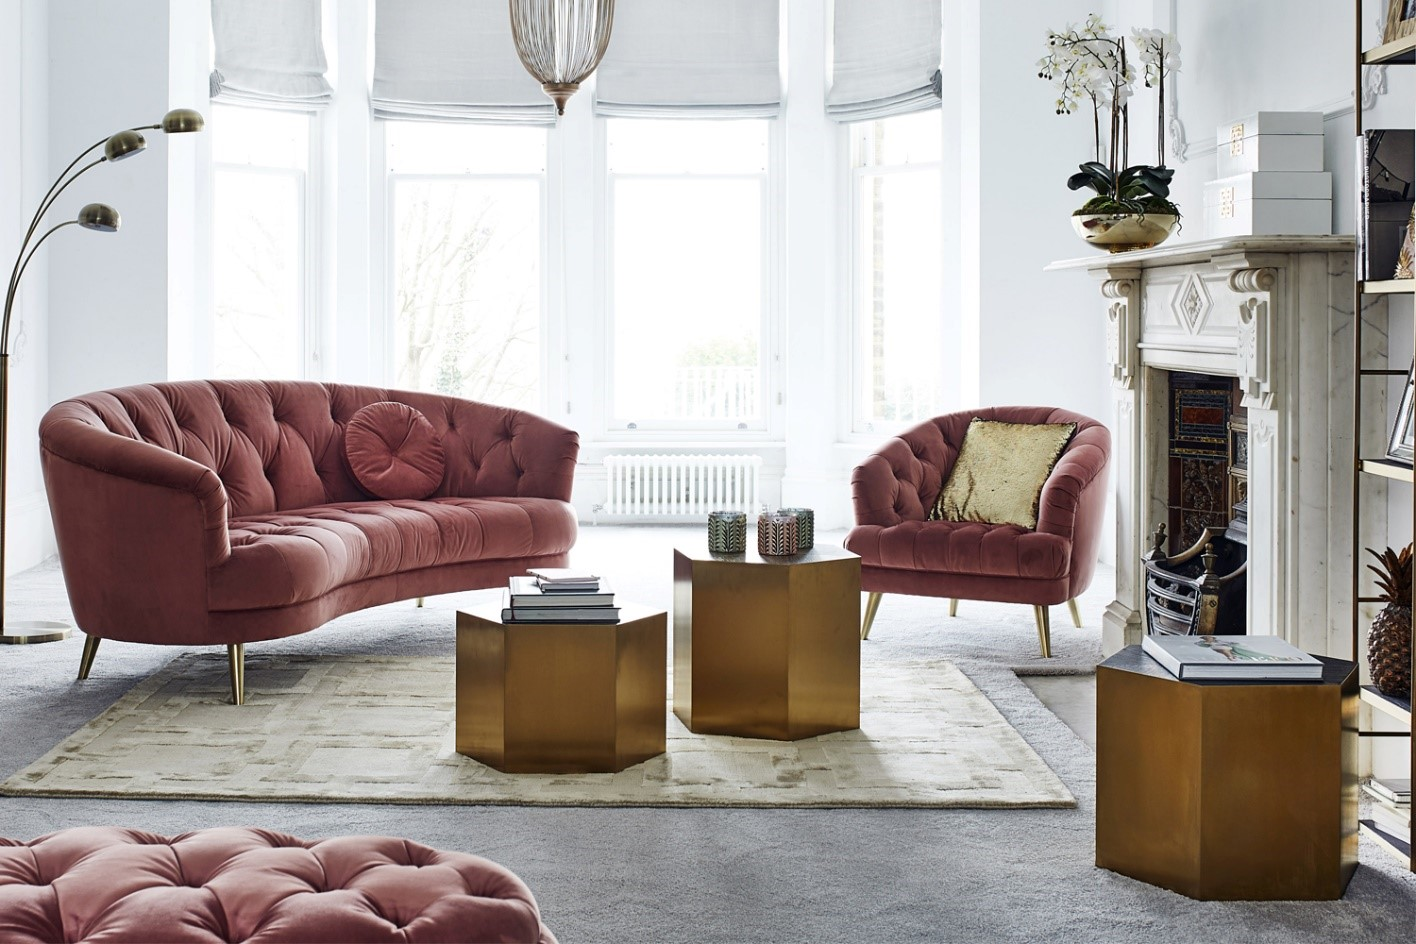 Top Interior Trends for Spring/Summer 2019